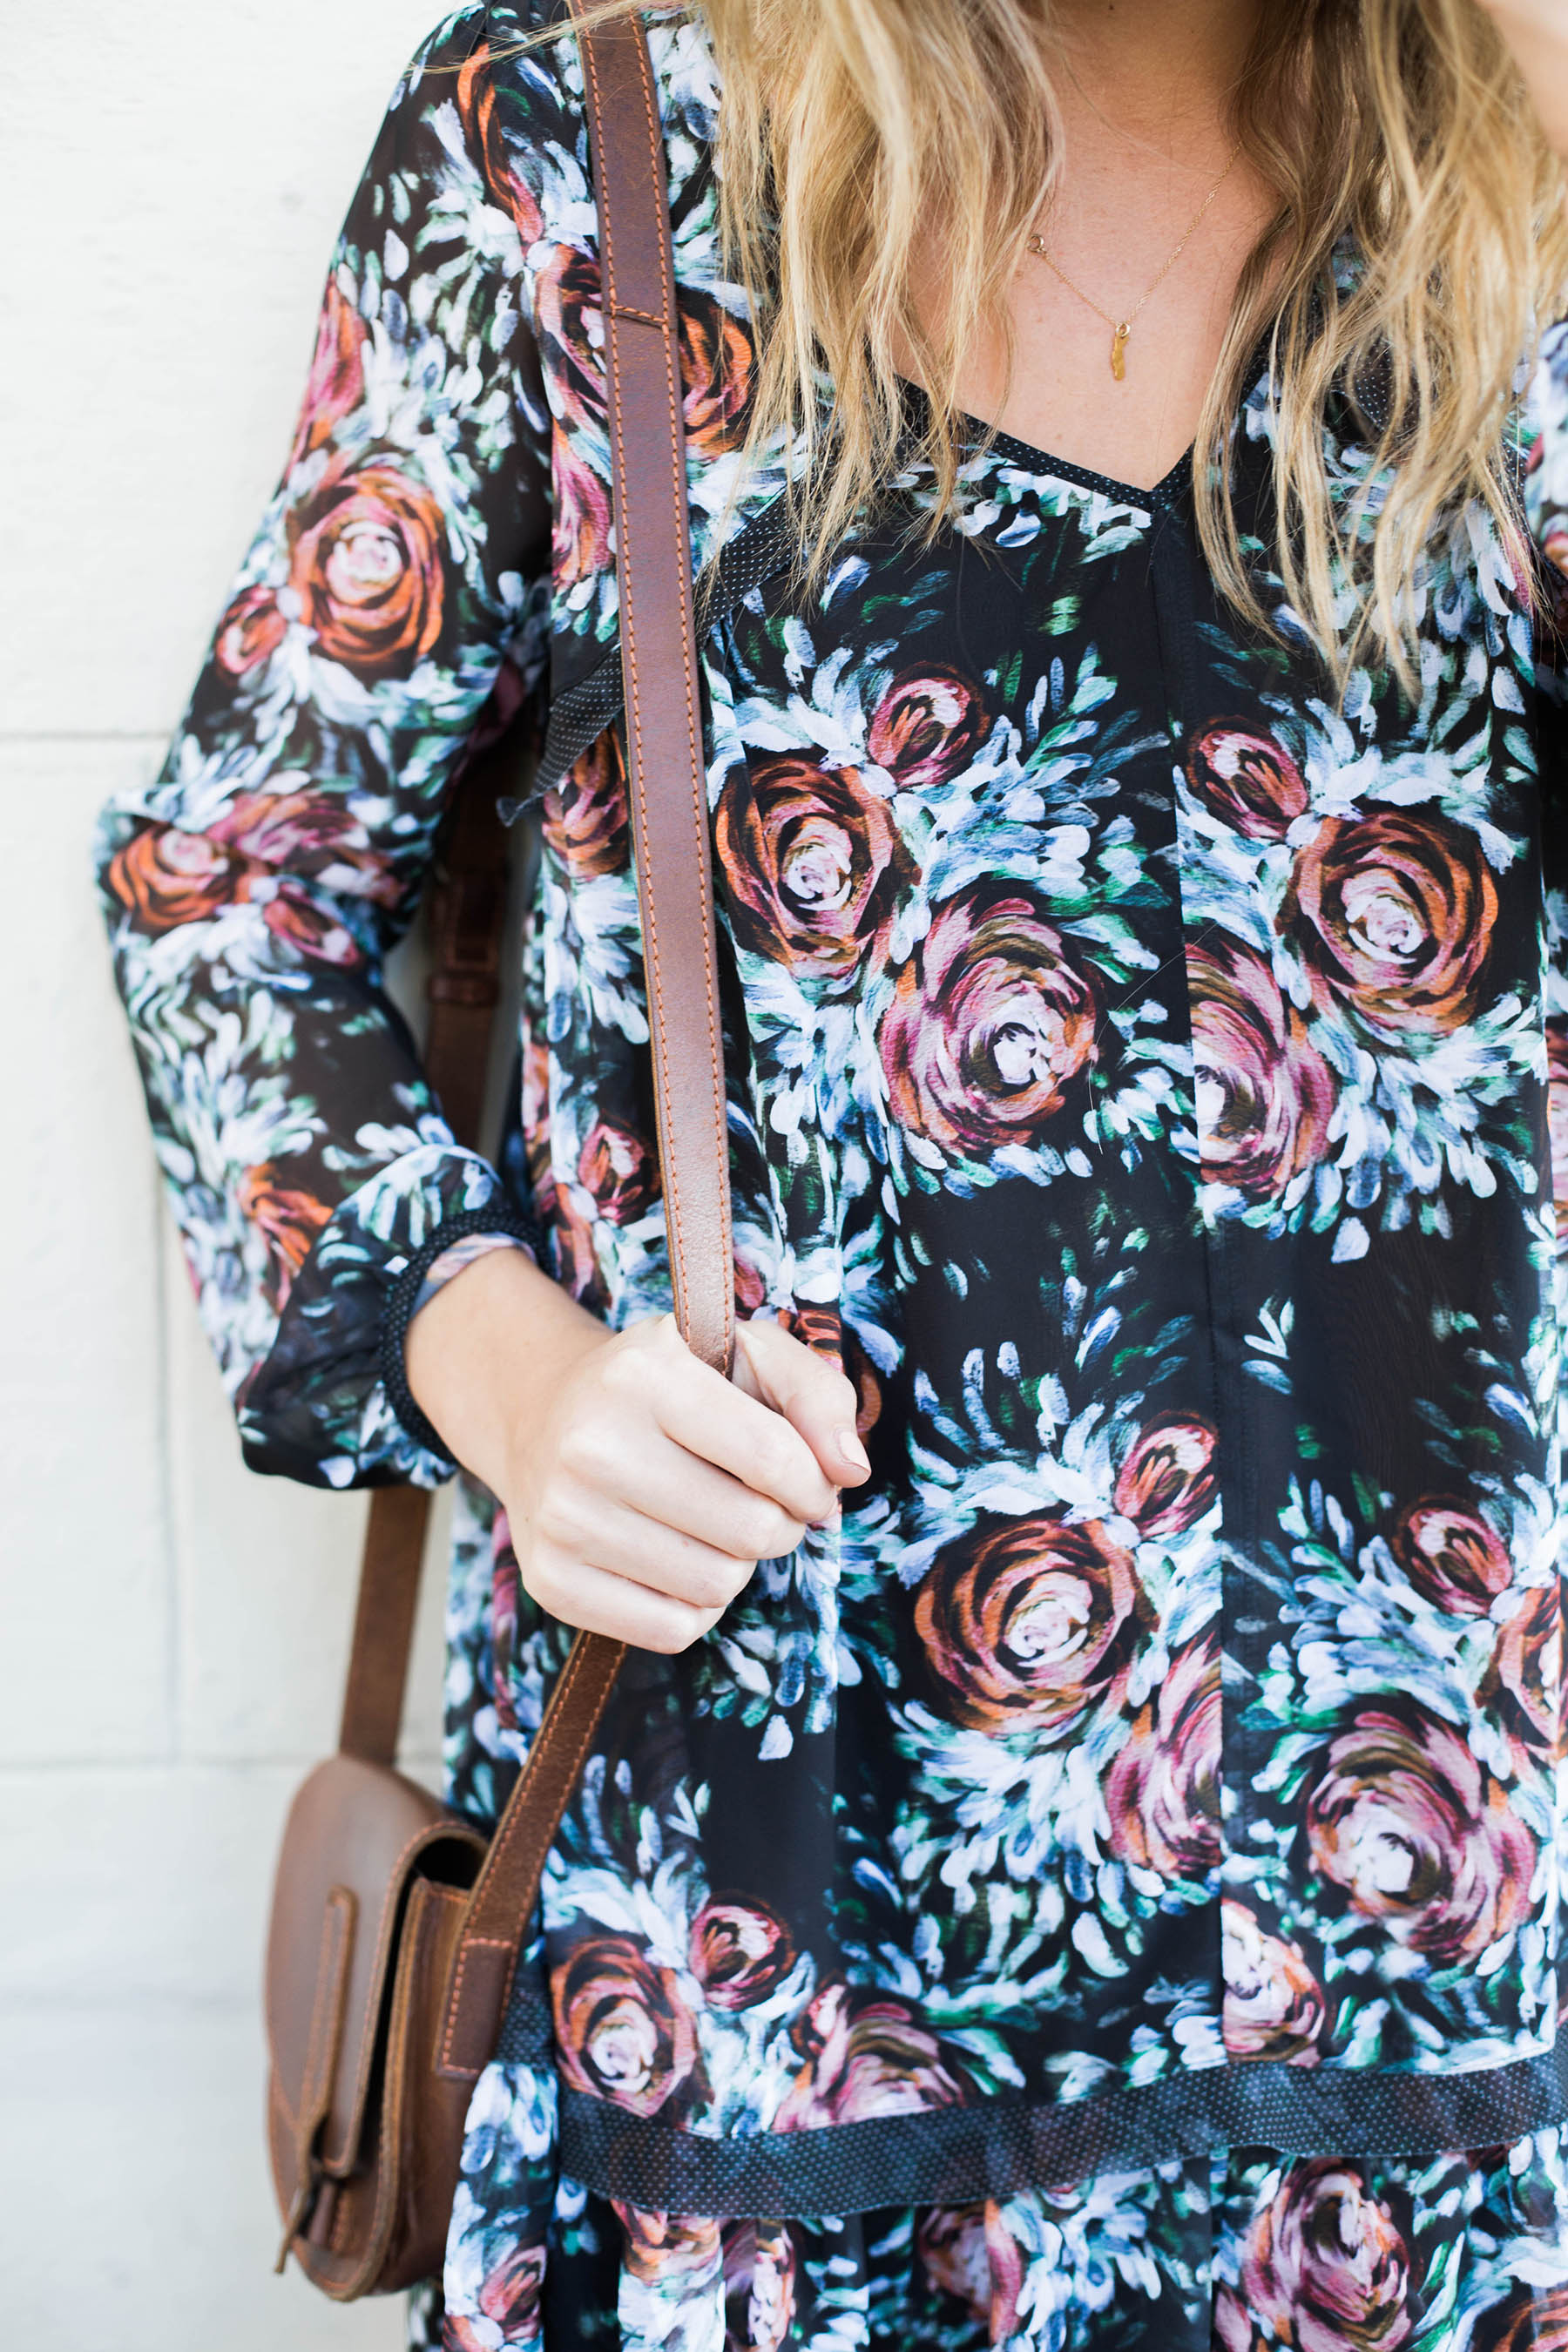 dark floral swing dress from Anthropologie and Urban Outfitters crossbody bag